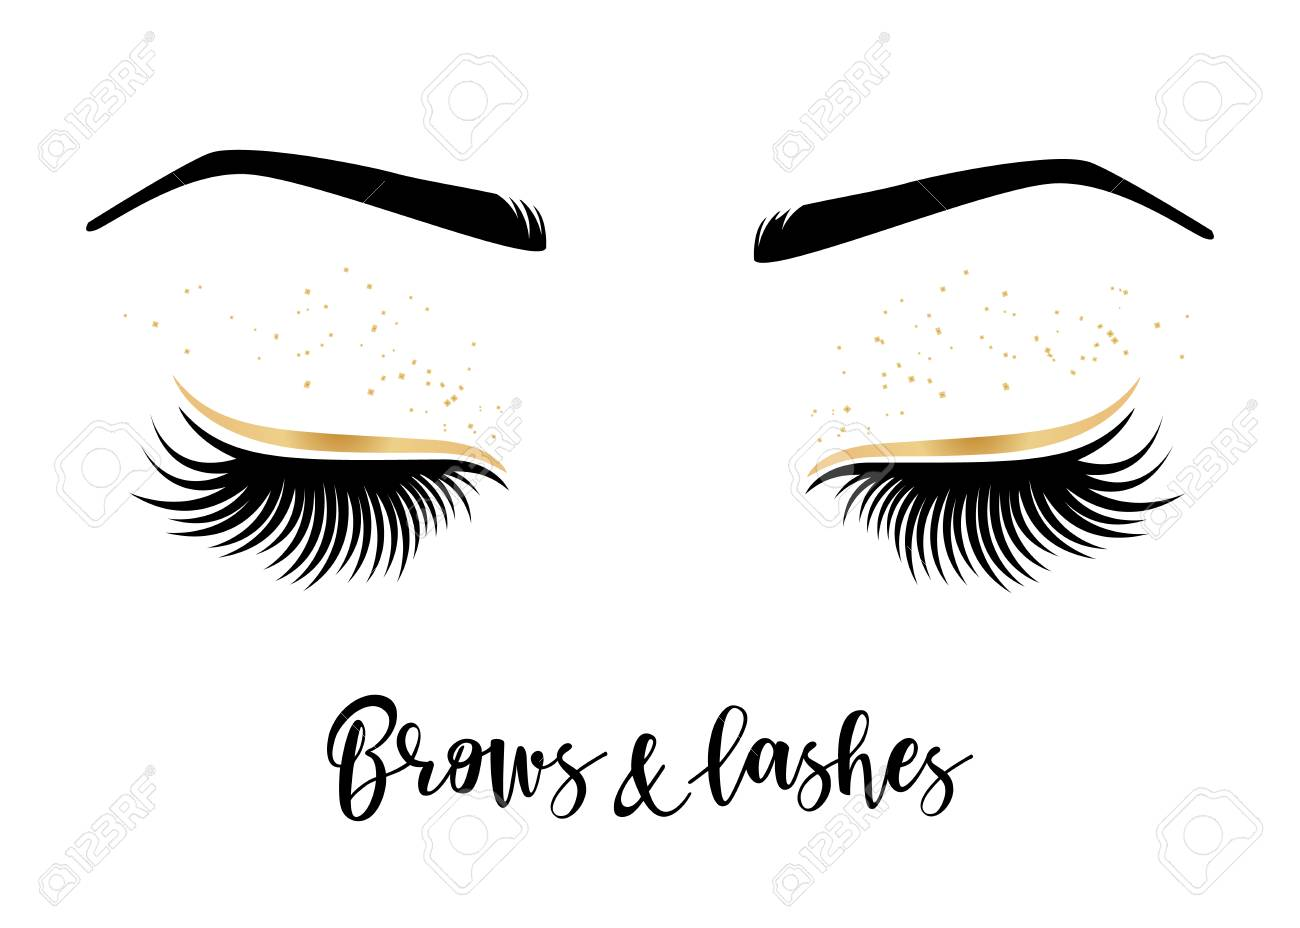 5034d86974b Brows and lashes lettering. Vector illustration of lashes and brows. For  beauty salon,